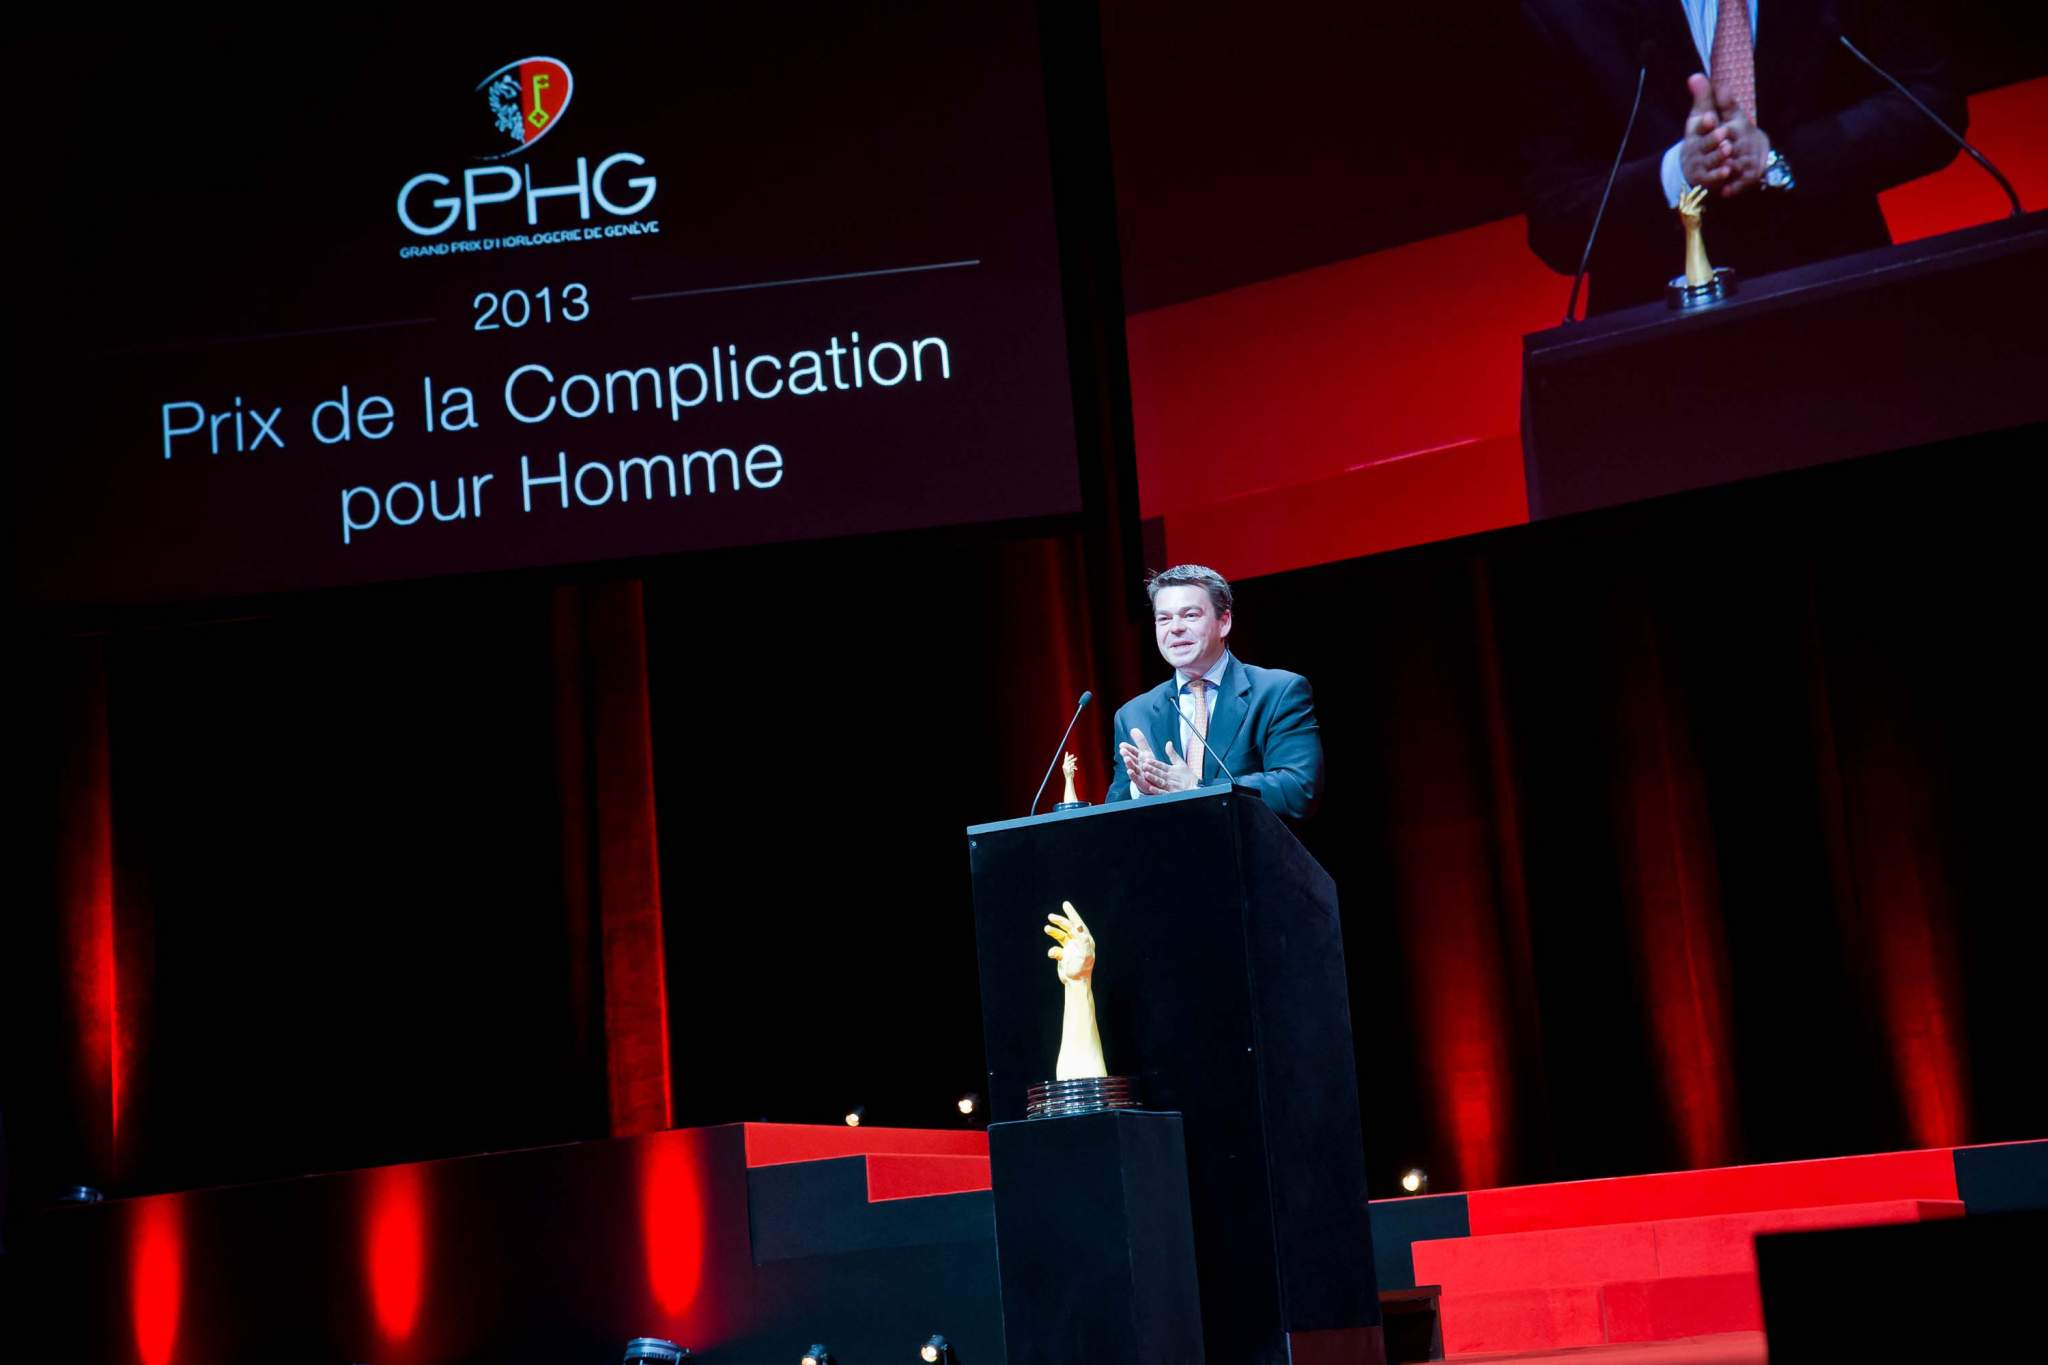 Speech of Romain Gauthier, founder of Romain Gauthier, winner of Men's Complications Watch Prize 2013